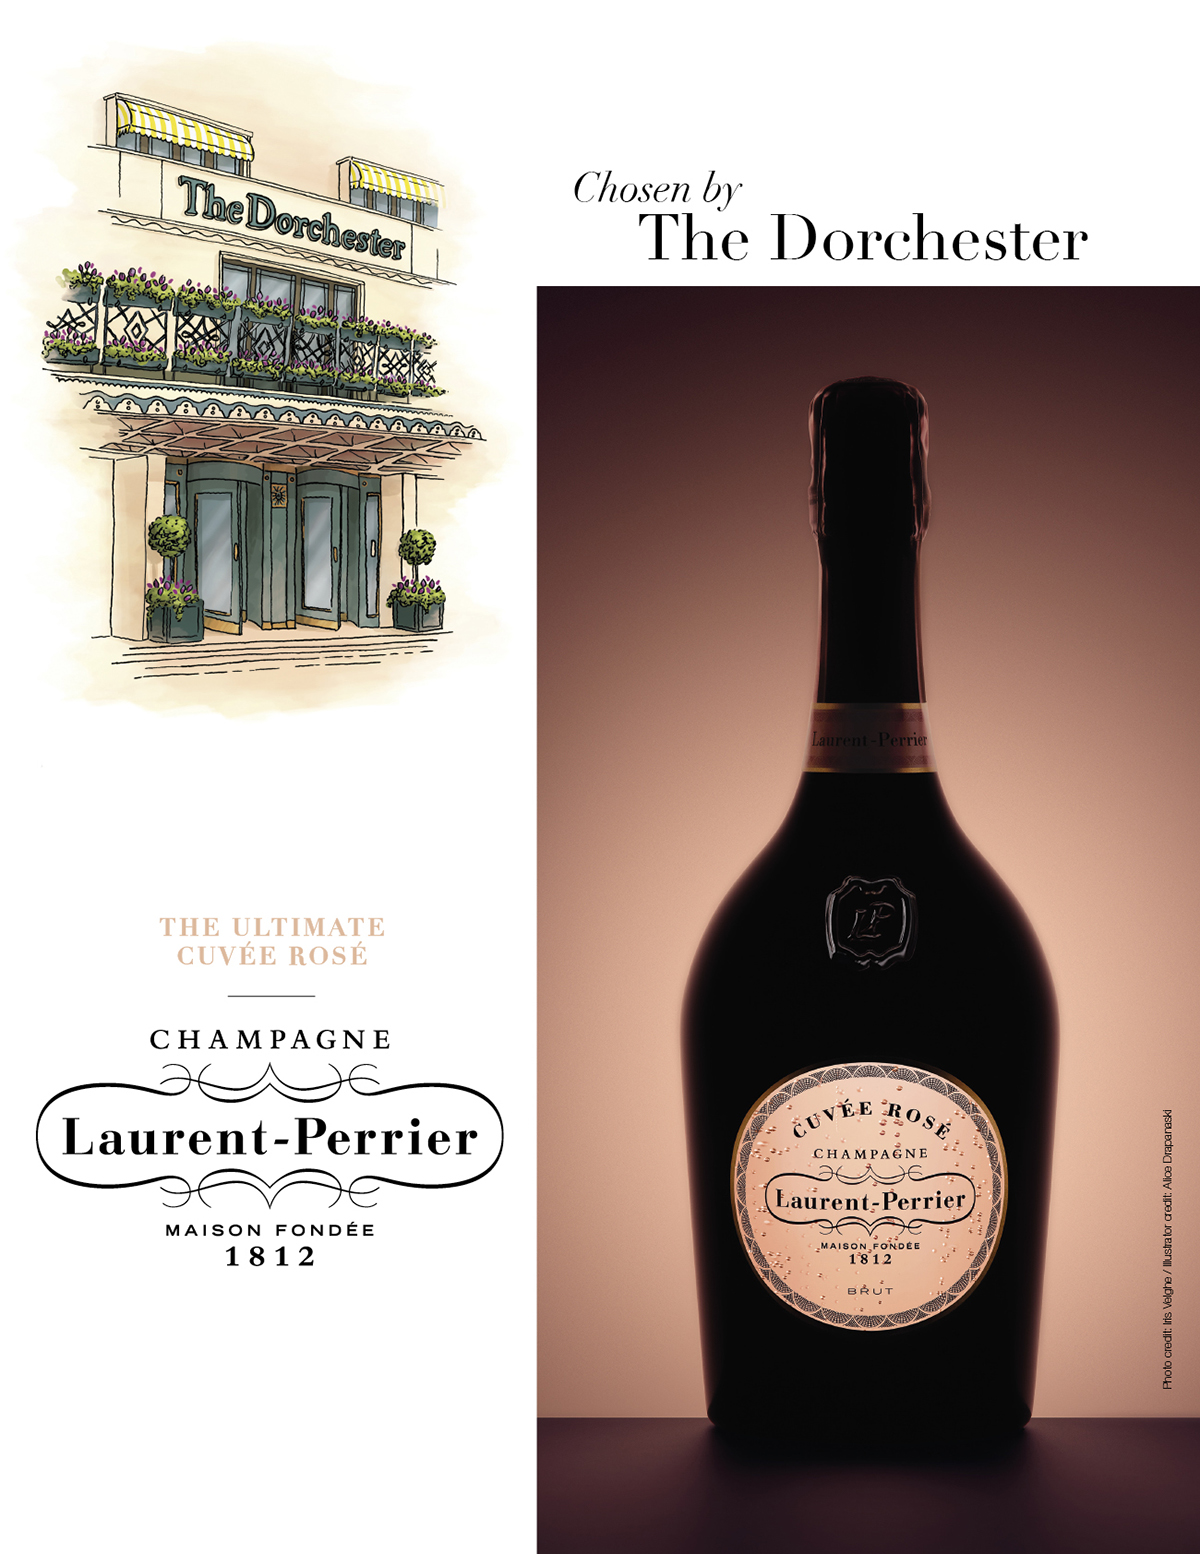 laurent-perrier-champagne-publicite-marketing-ads-cuvee-rose-tour-argent-meurice-gstaad-palace-ritz-dorchester-gavroche-agence-publicis-conseil-6